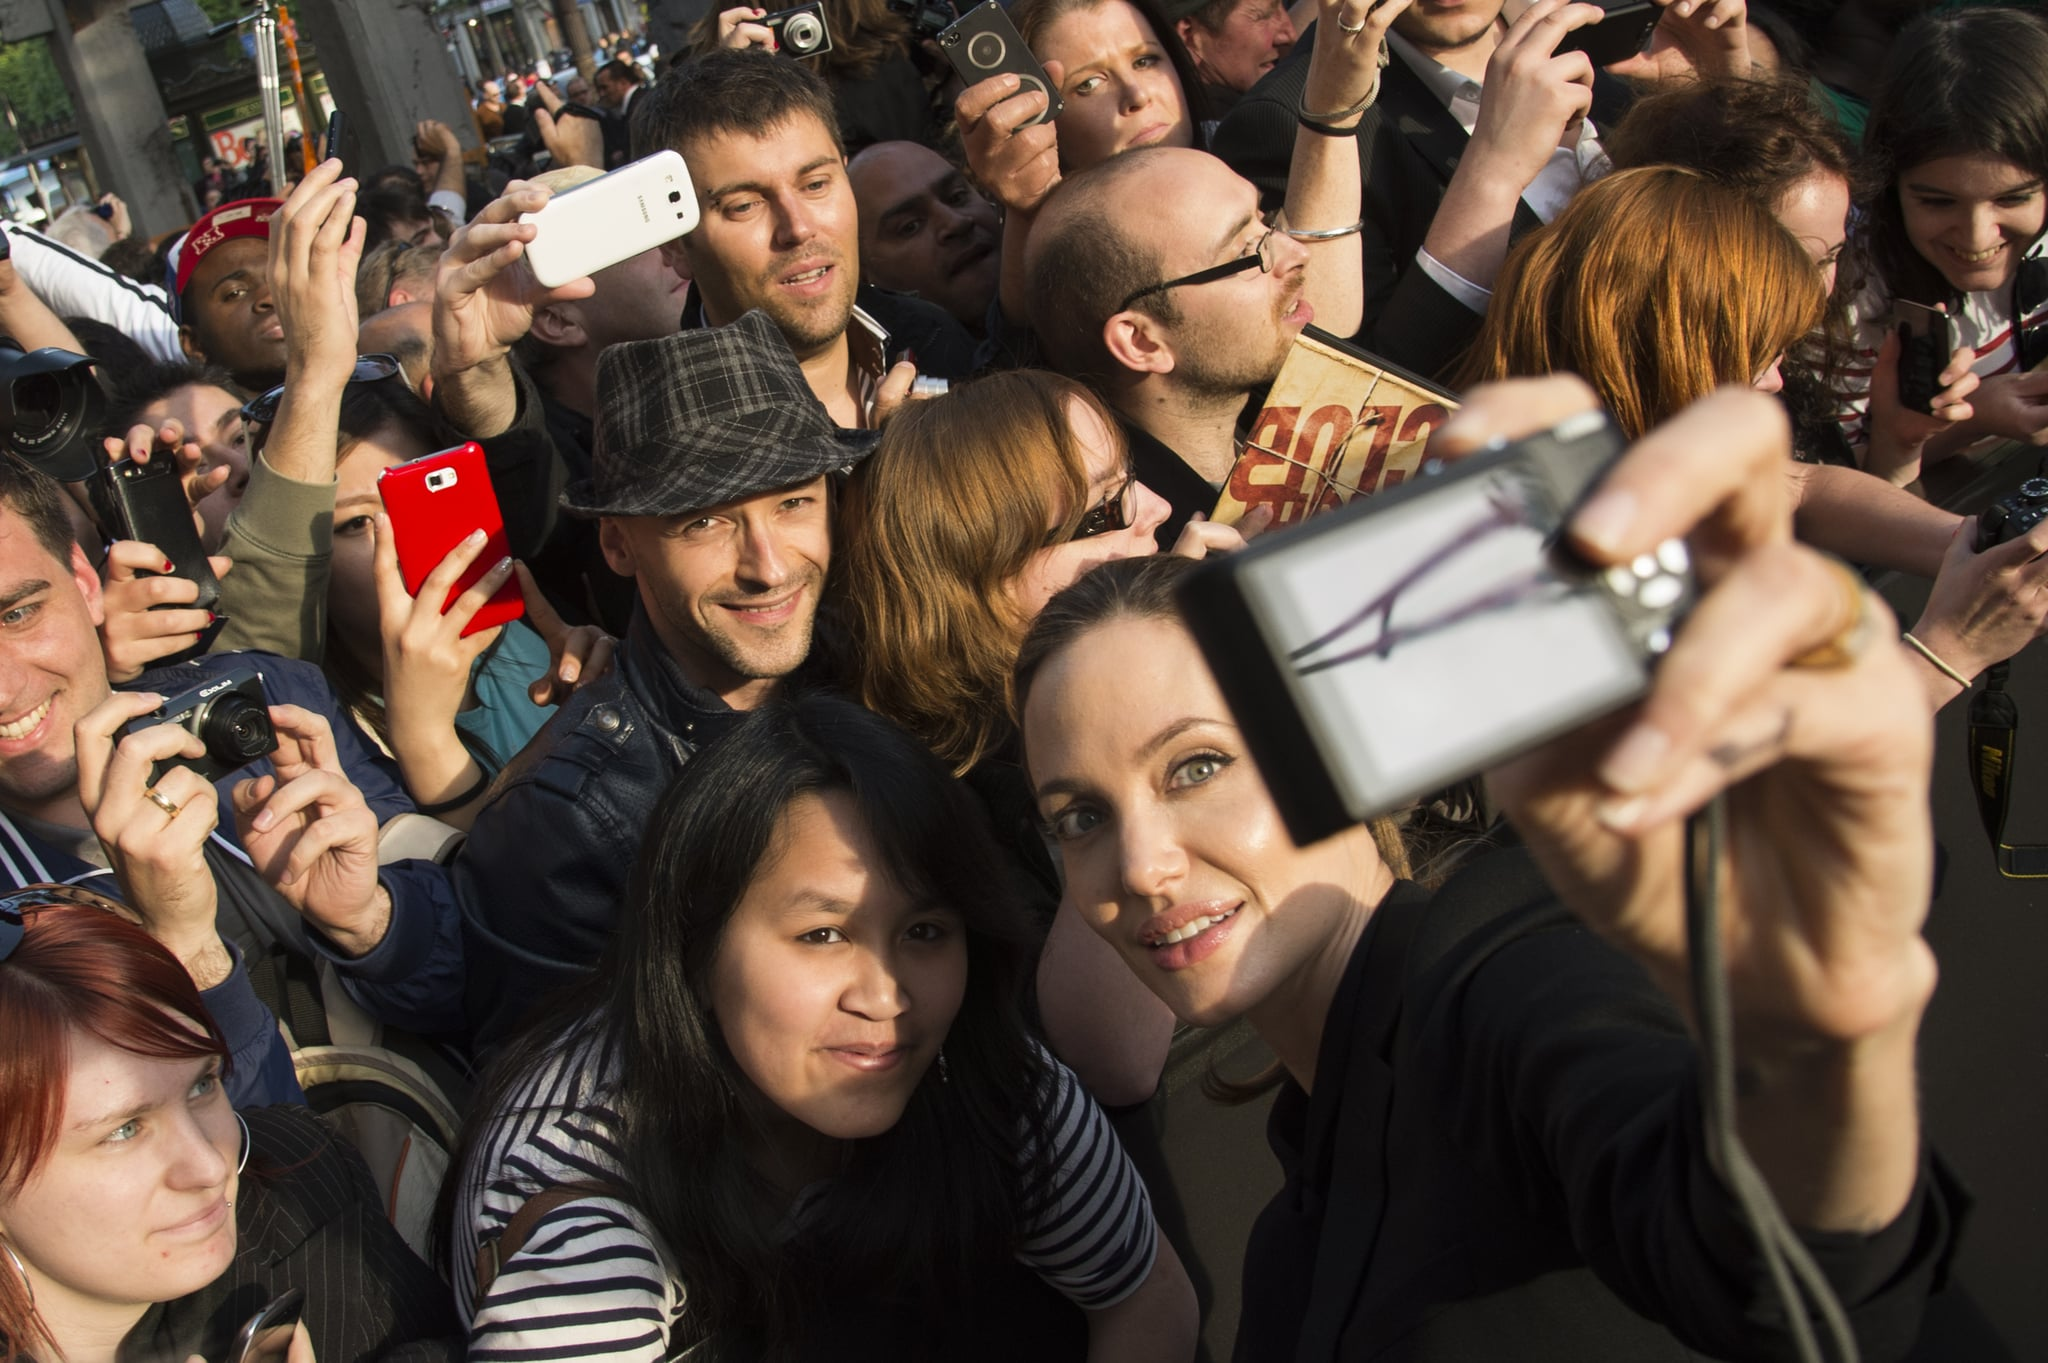 Angelina Jolie smiled for a photo while attending Brad Pitt's Paris premiere of World War Z in June 2013.